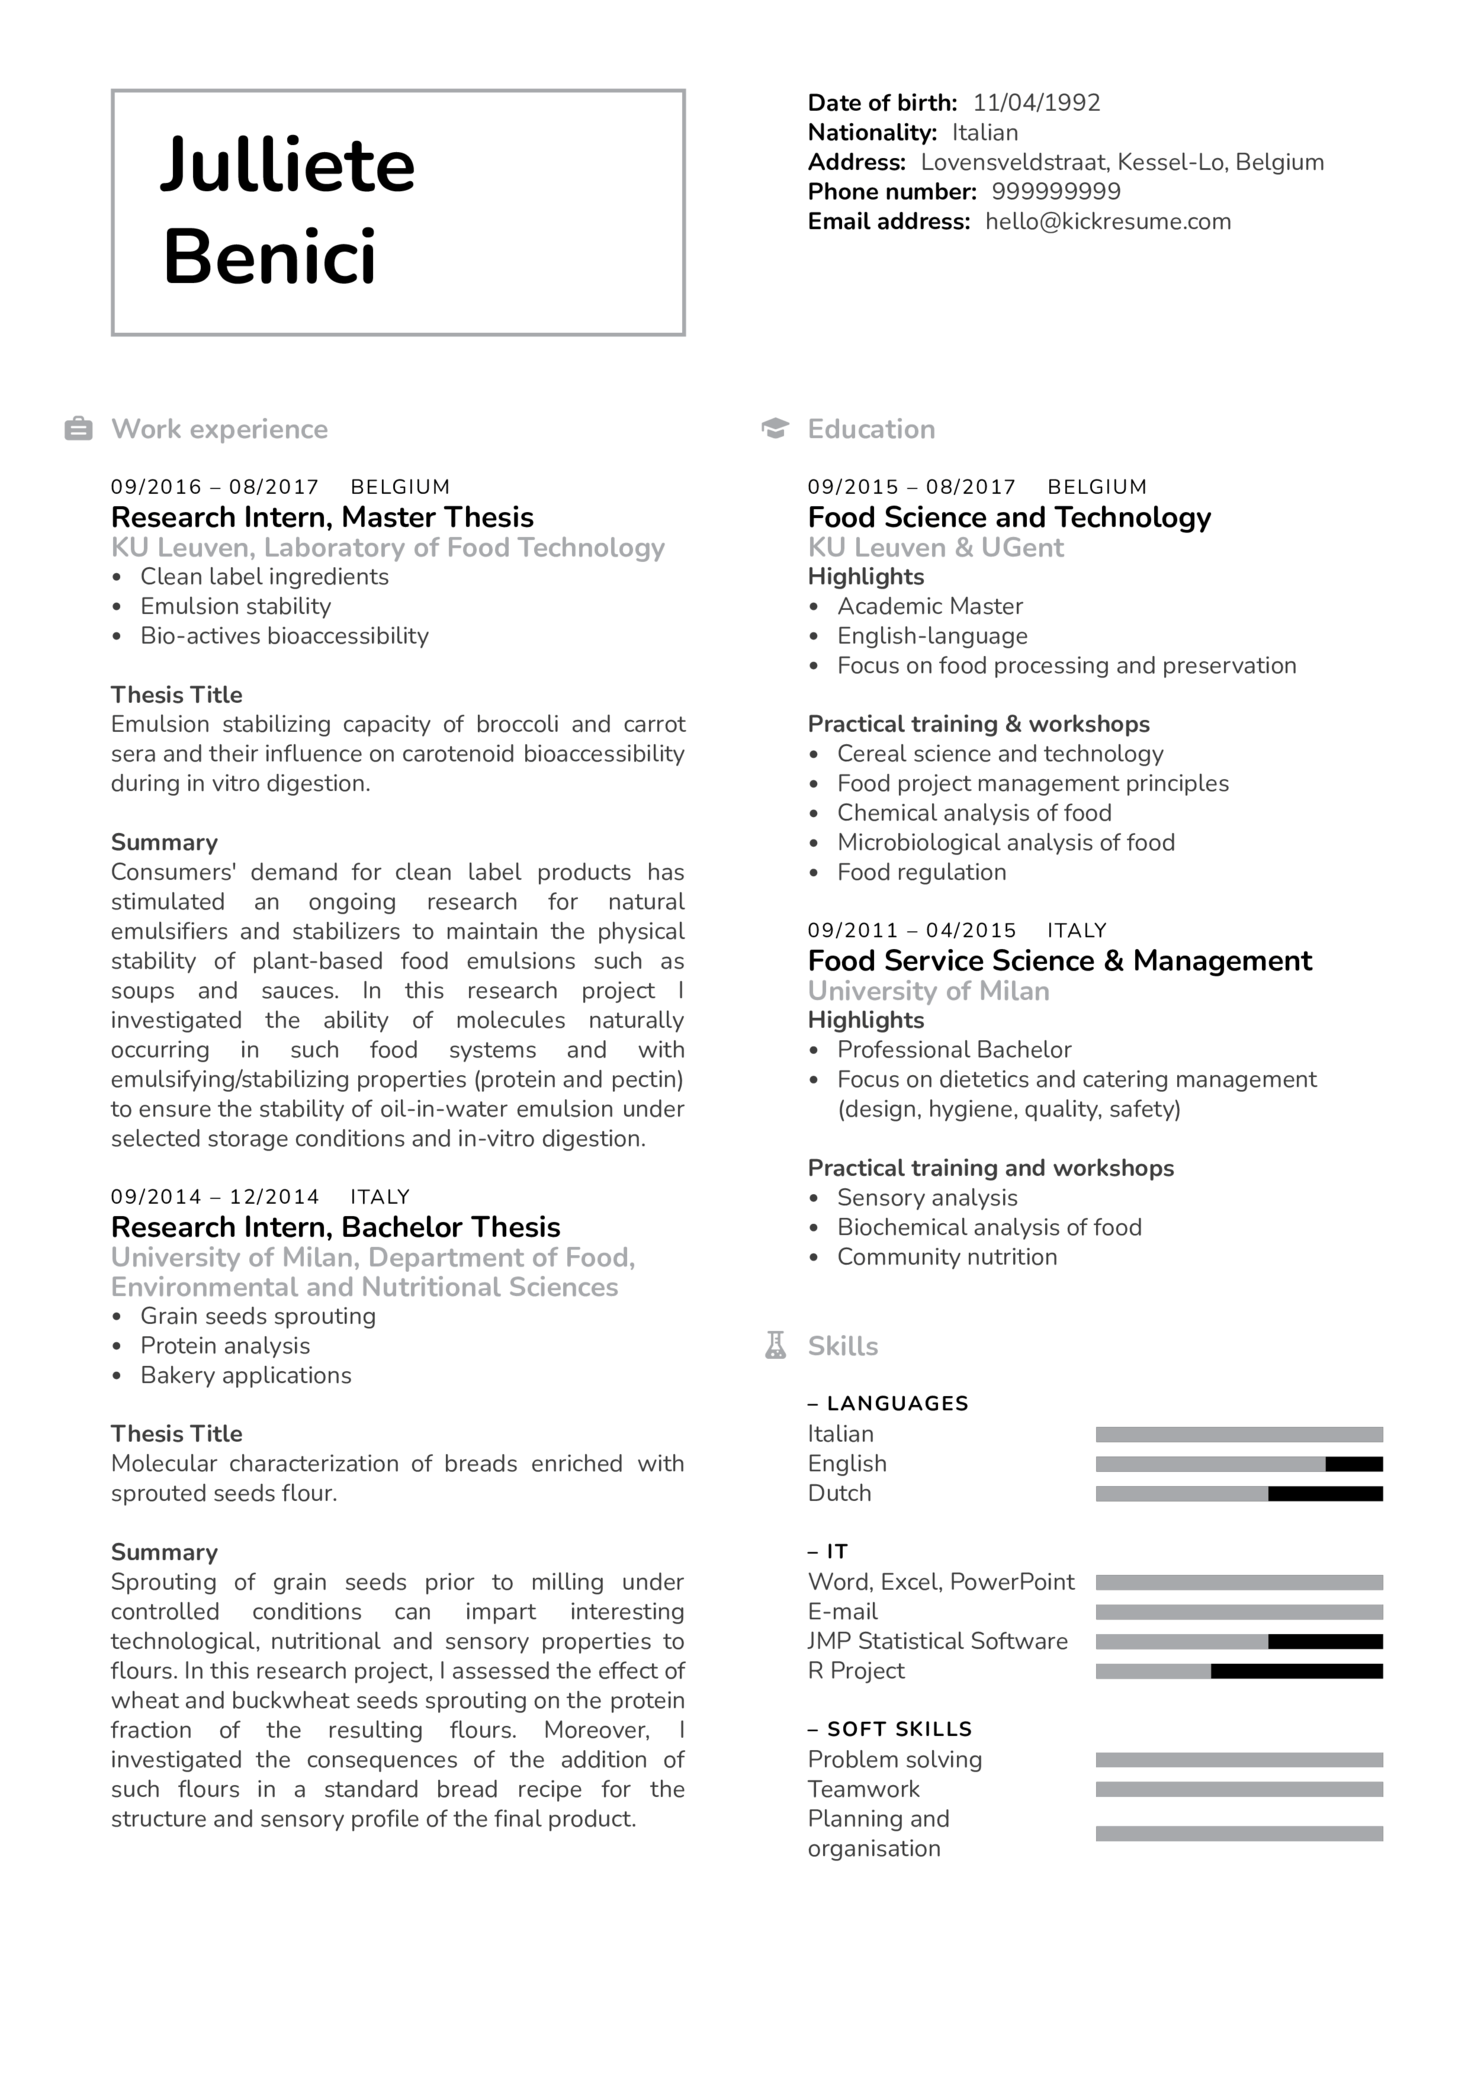 Quality Control Project Technician CV Example (Part 1)